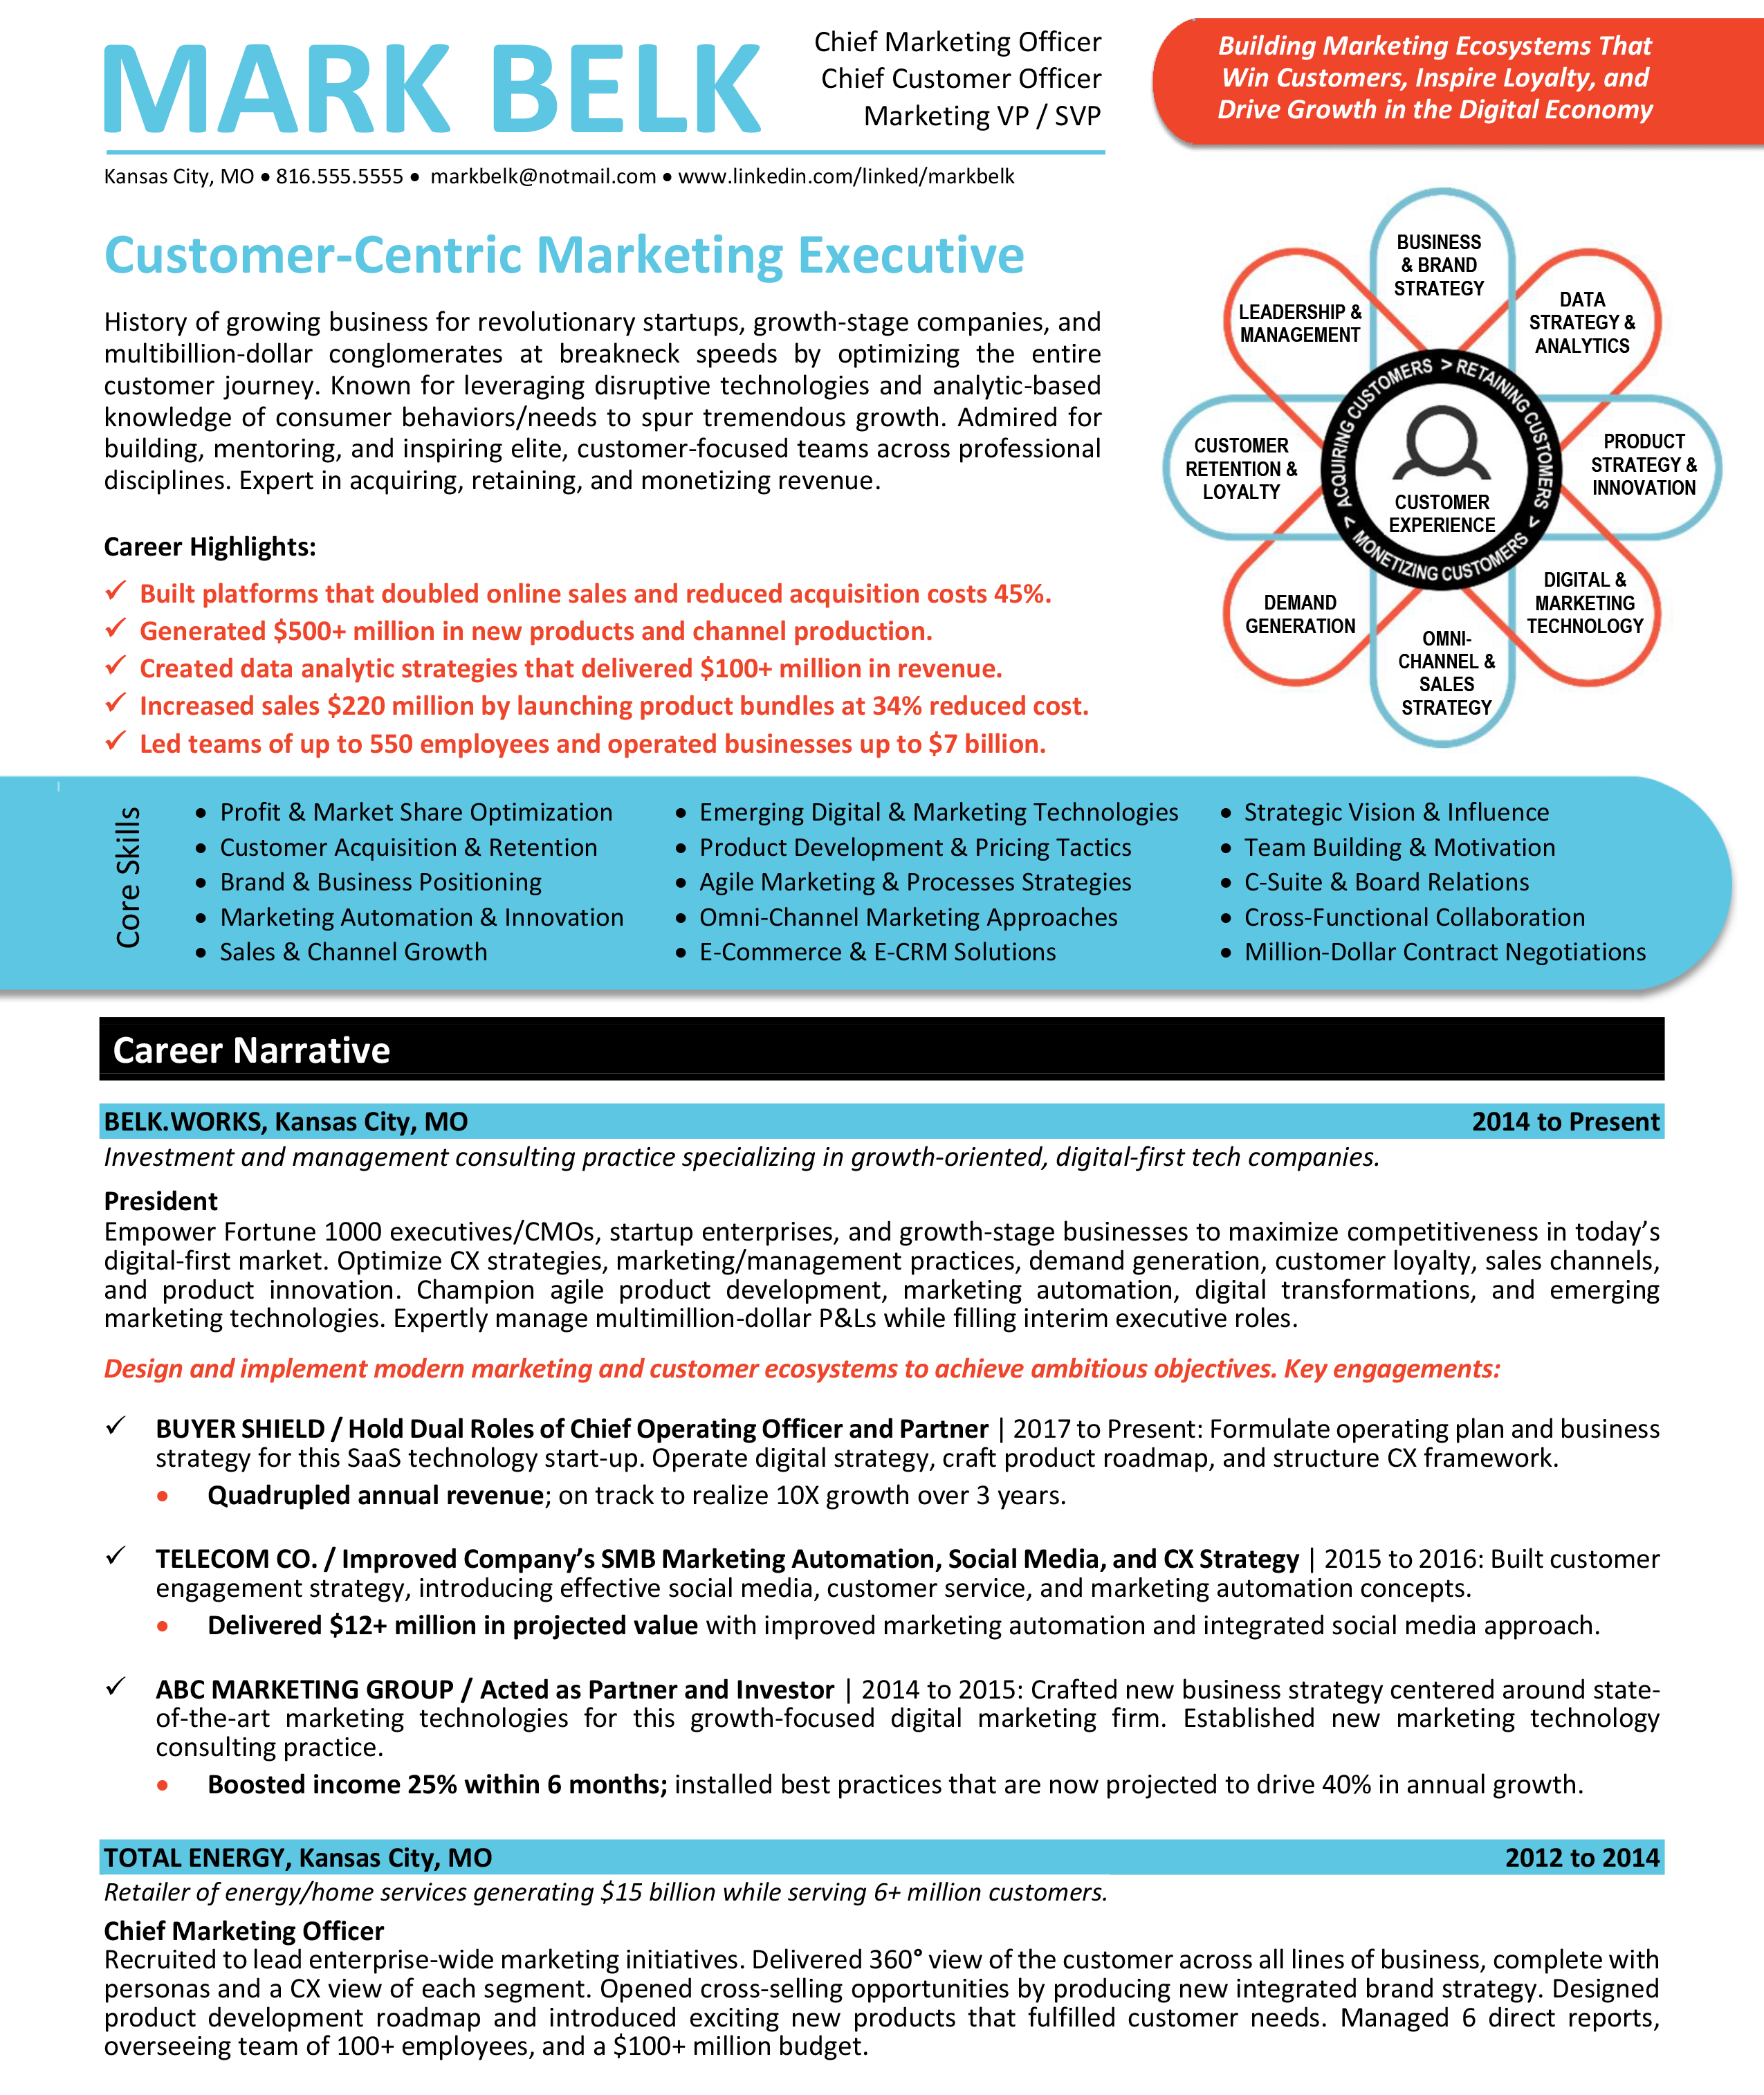 Executive Resume Example For A Chief Marketing Officer Cmo